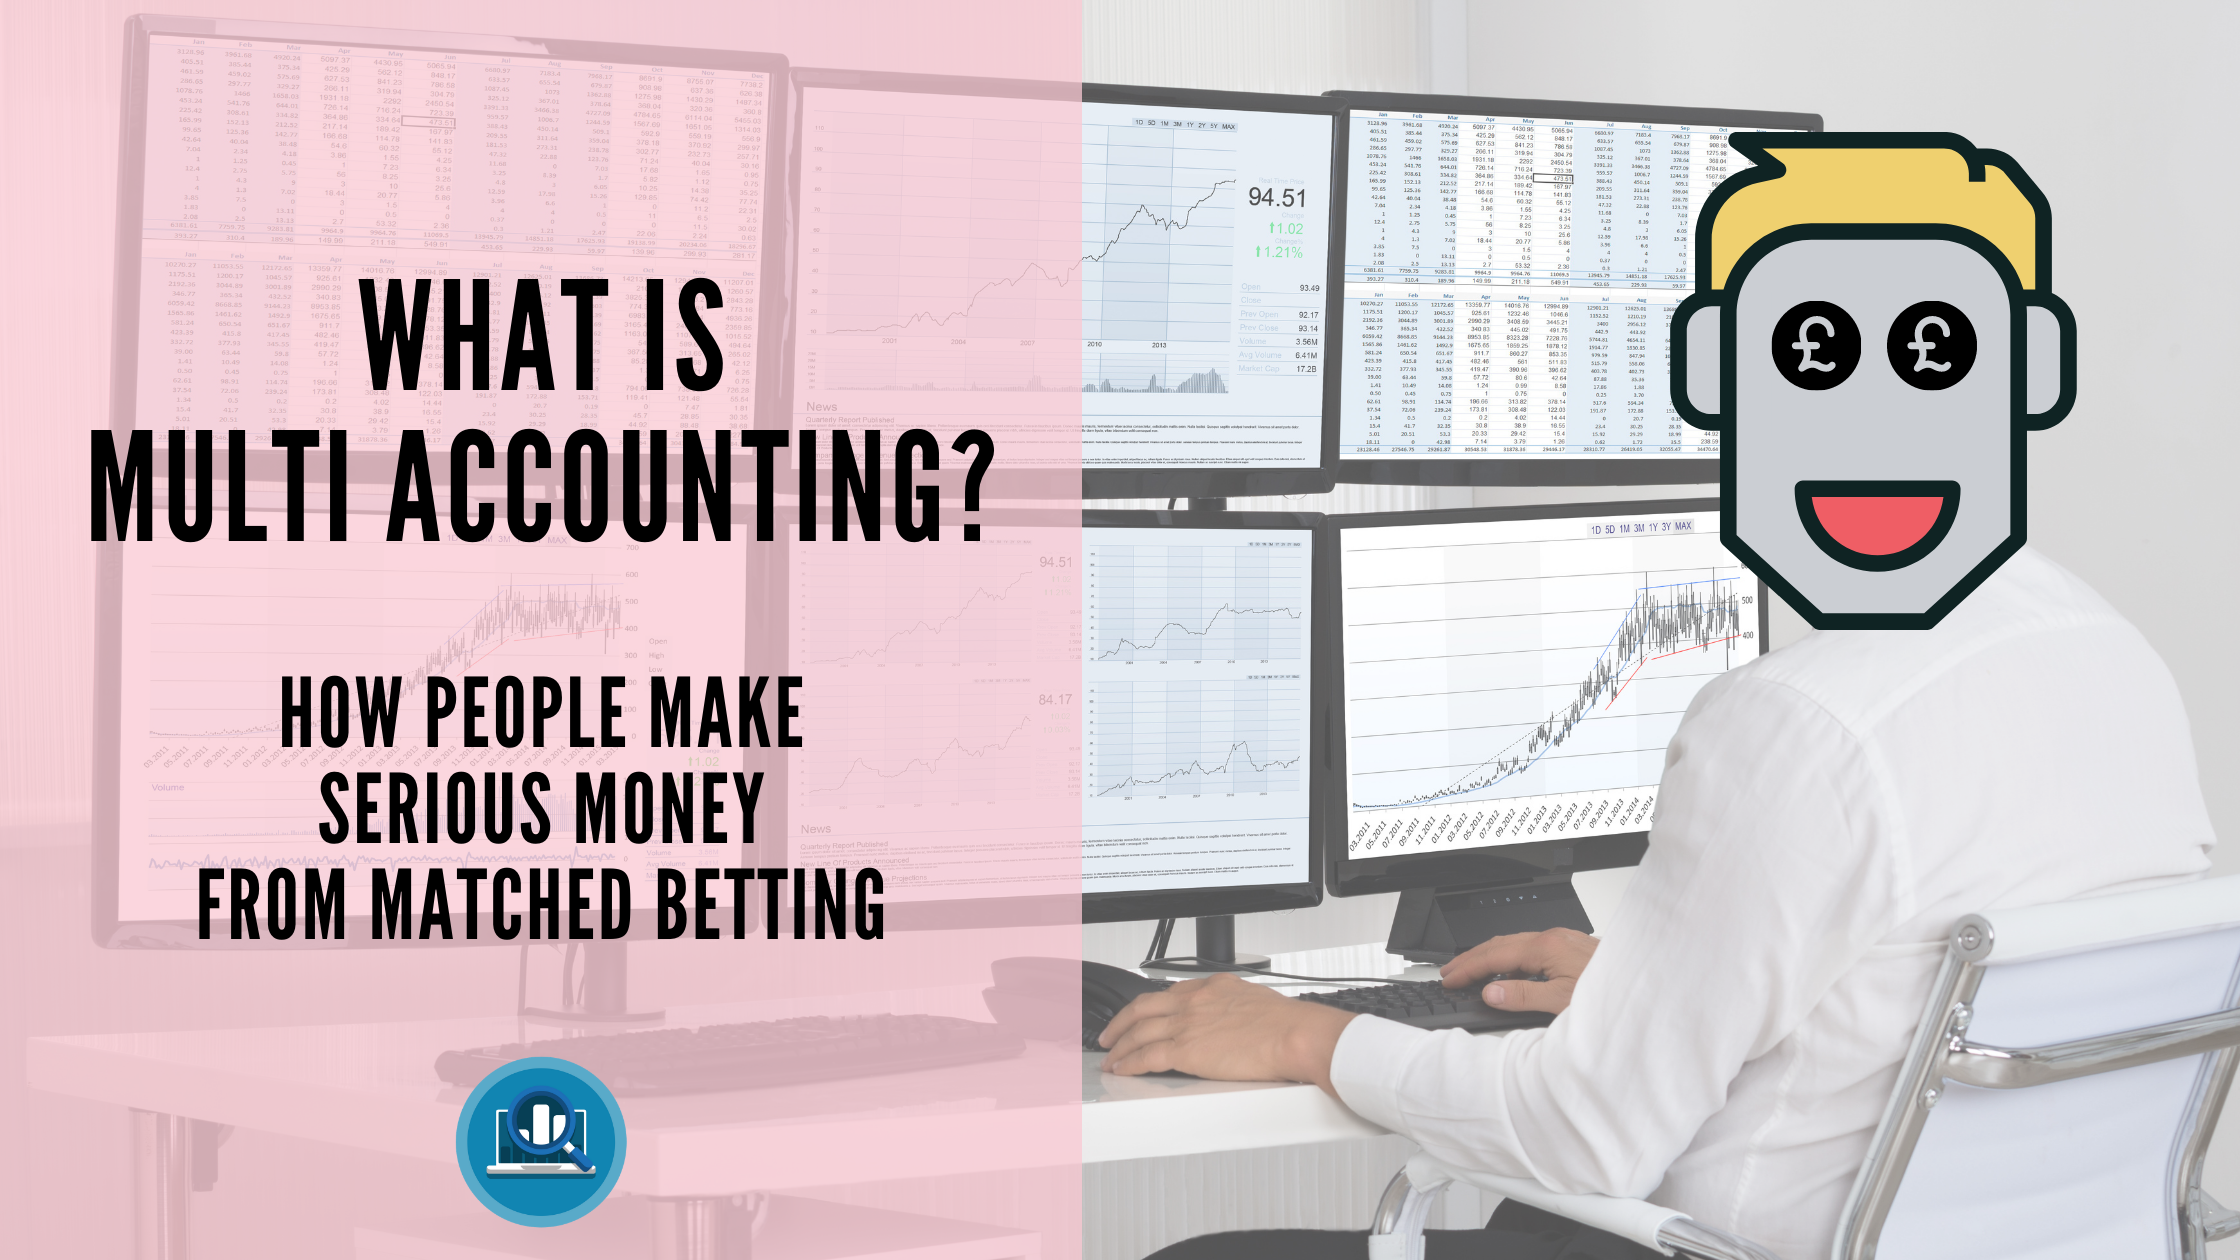 Multi accounting matched betting example preakness stakes 2021 betting